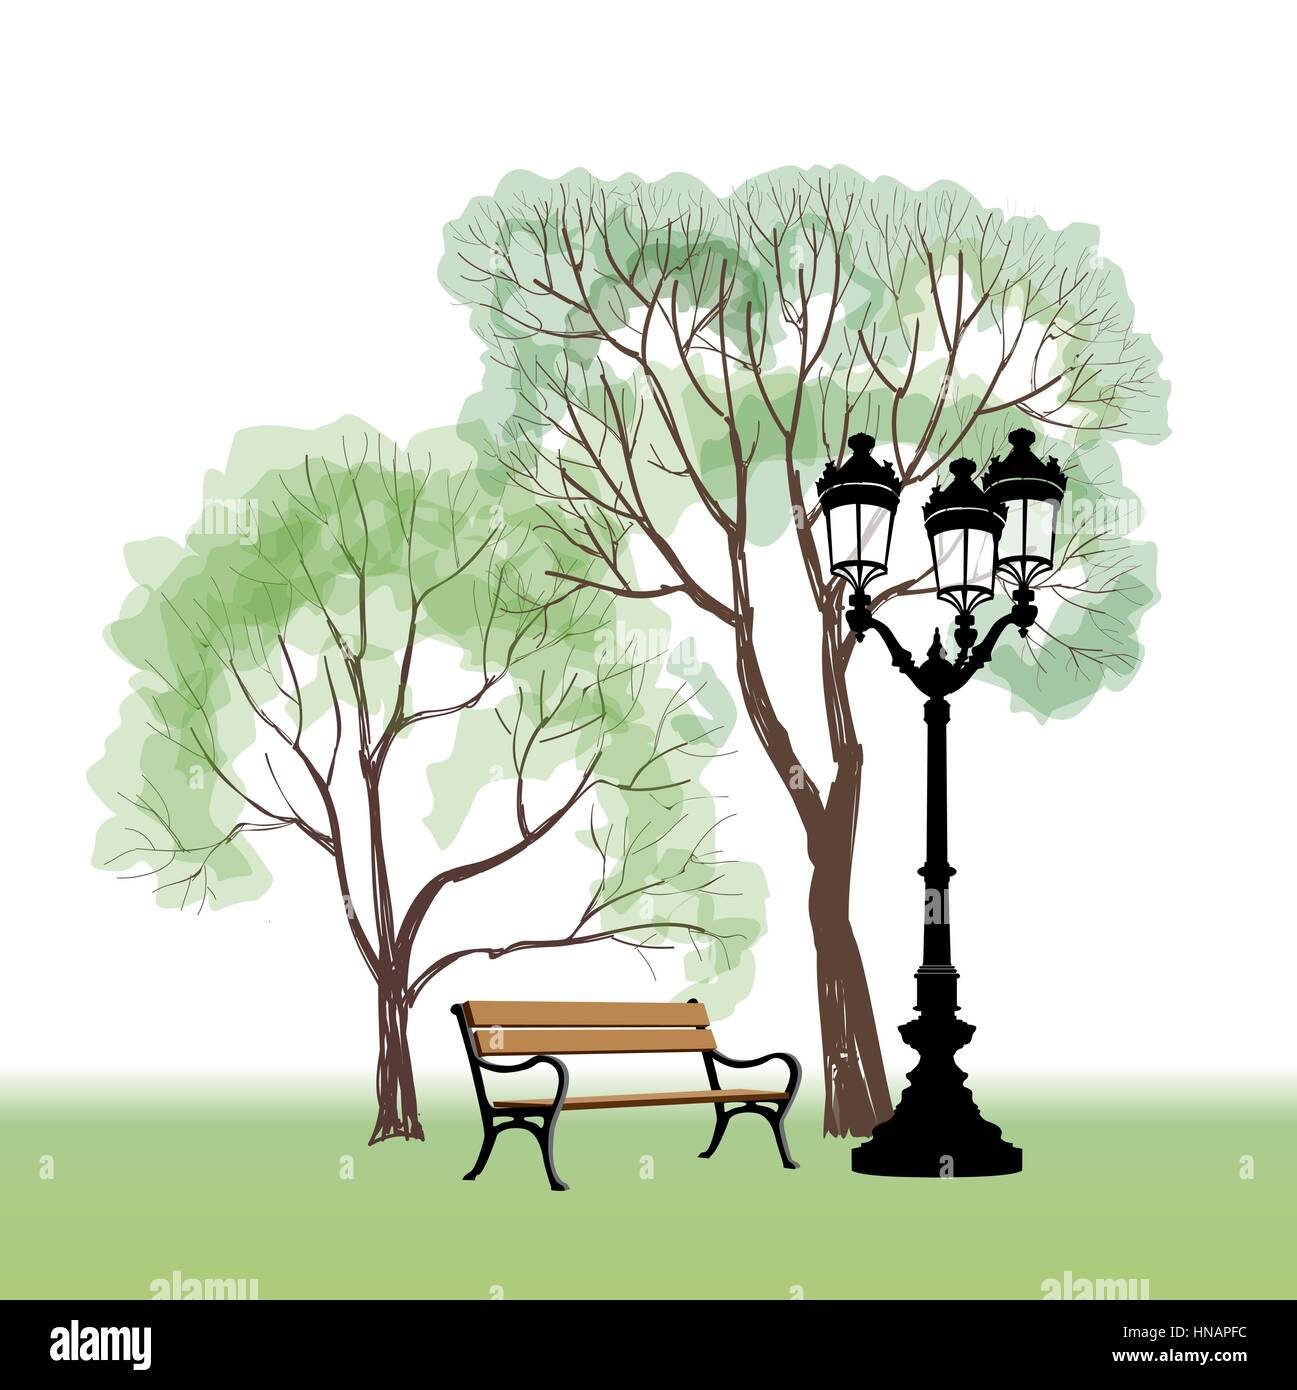 How to Draw a Park Bench  Our Pastimes